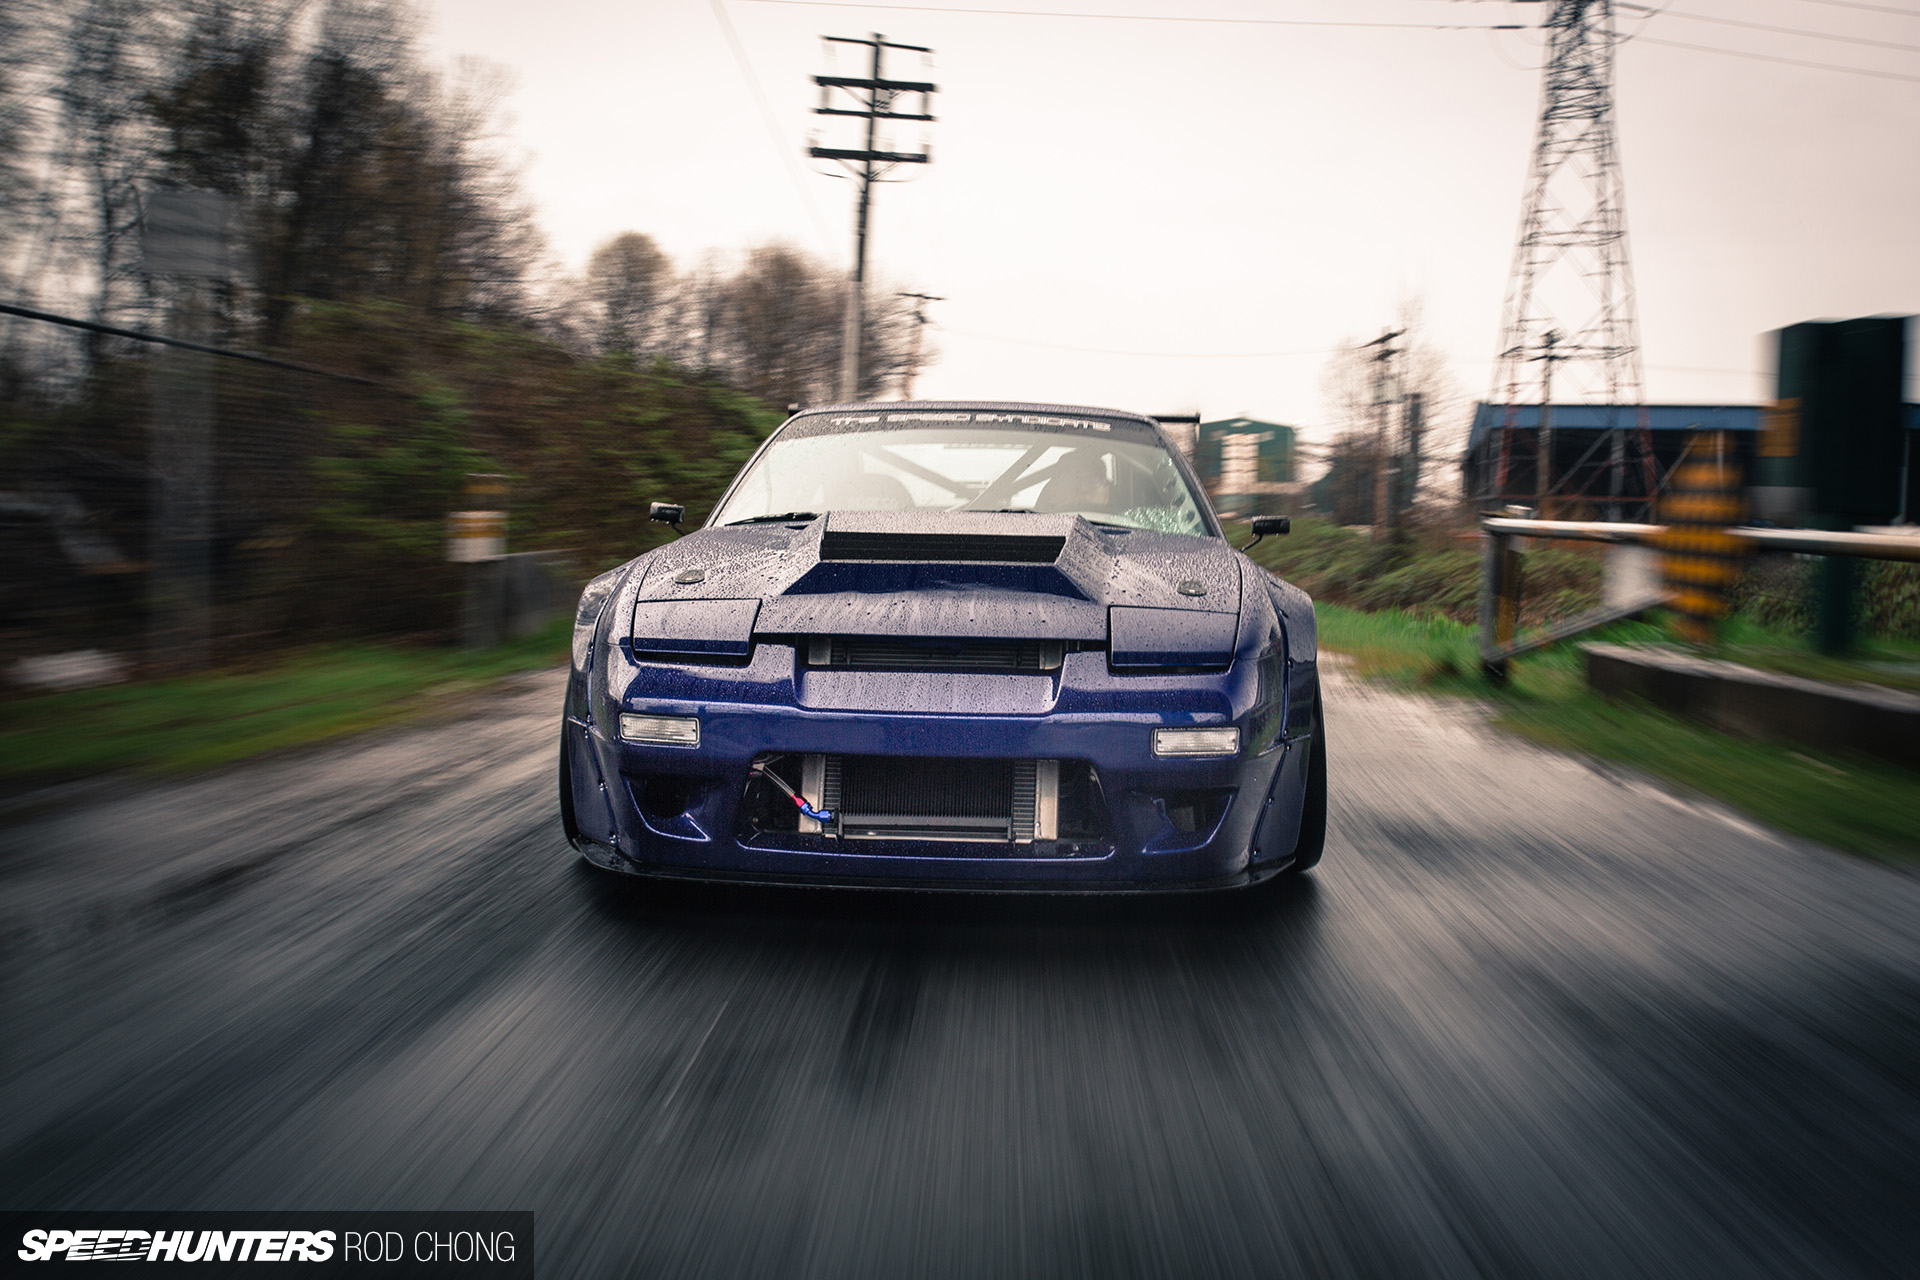 Grip Bunny A Different Breed Of S13 Speedhunters